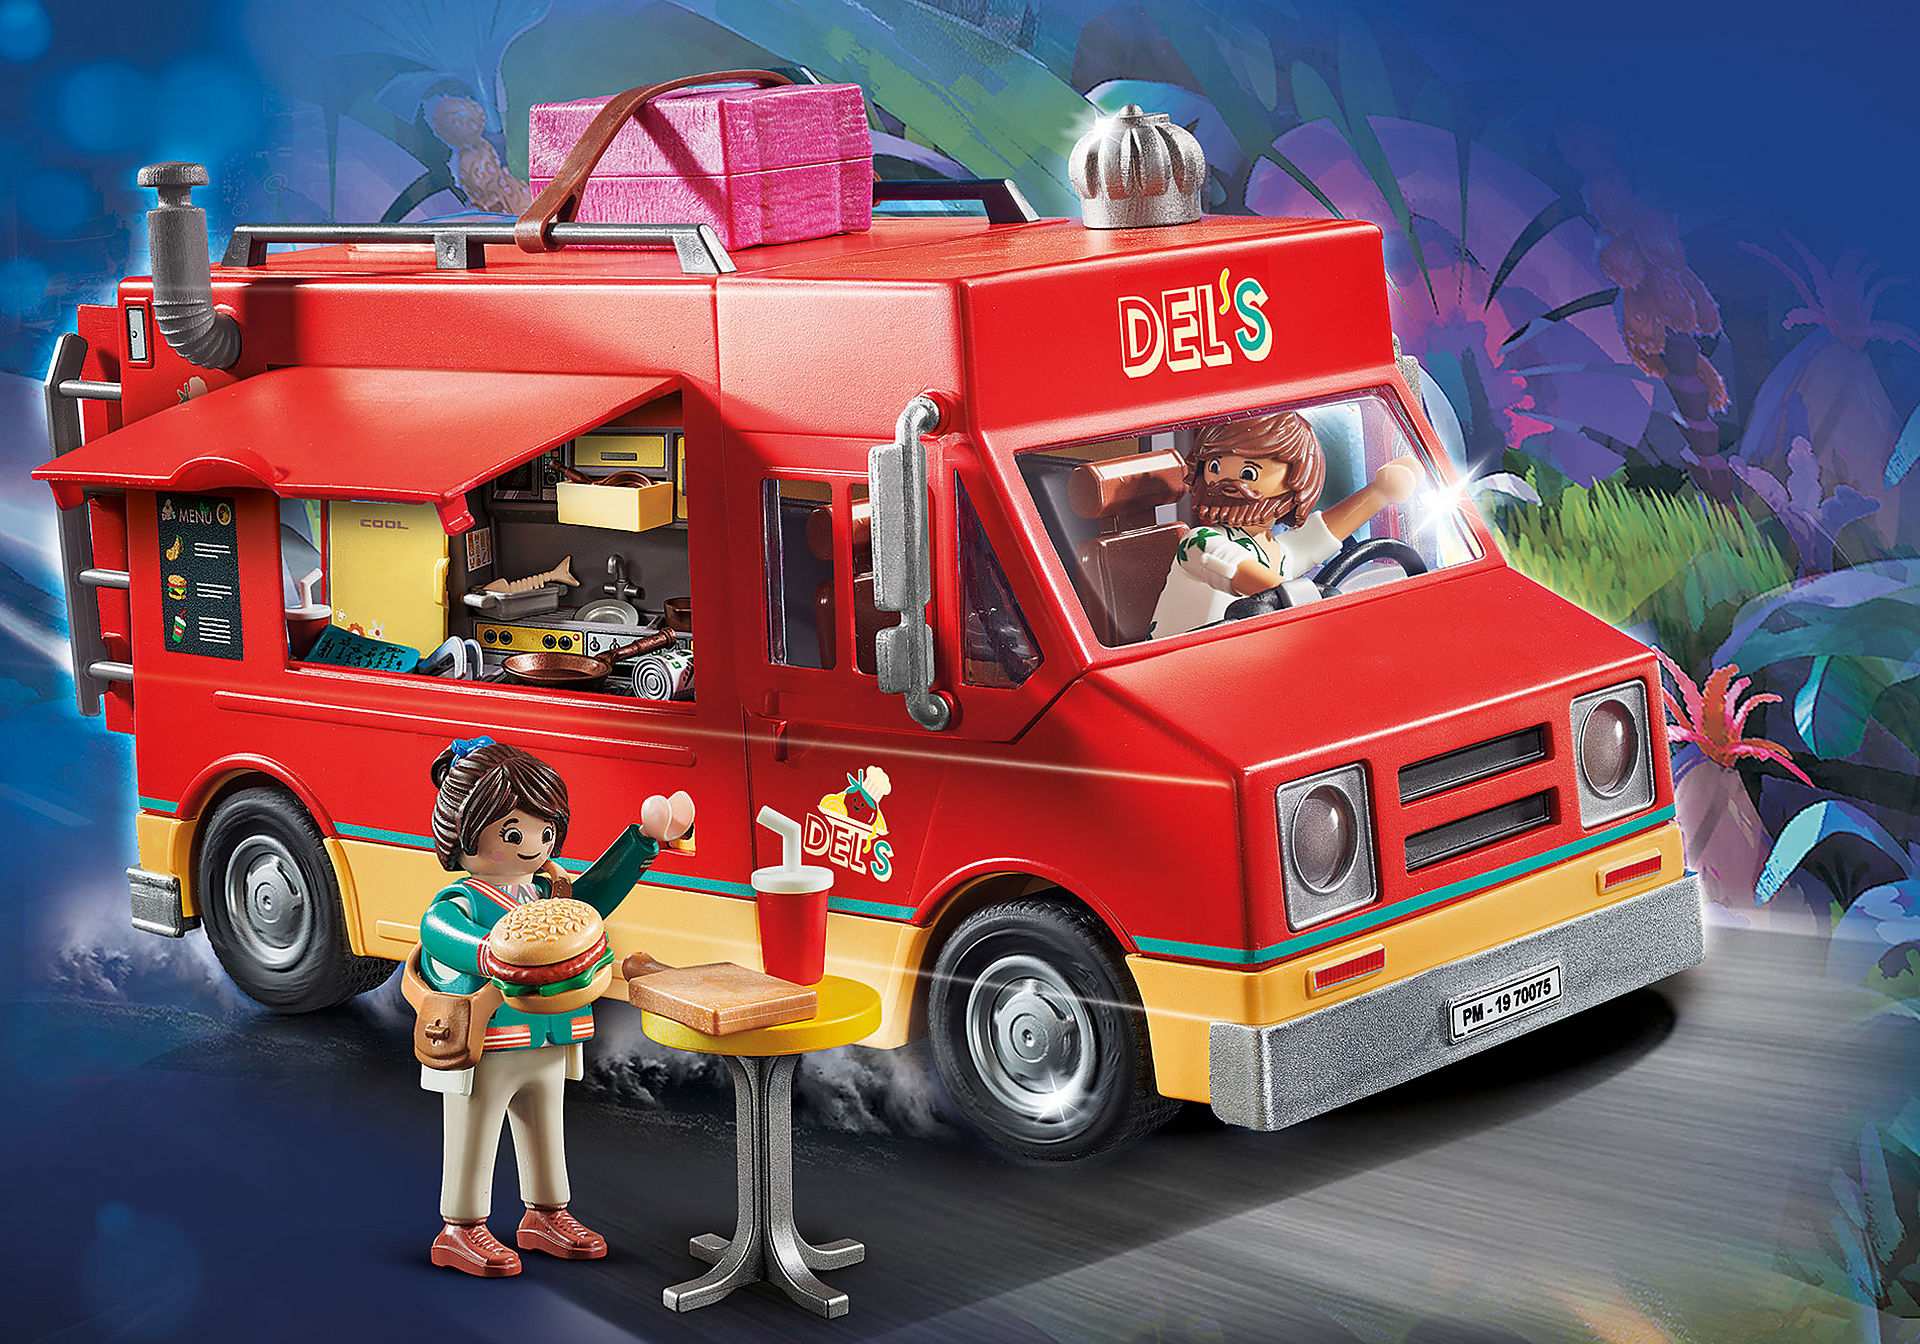 70075 PLAYMOBIL: THE MOVIE Food Truck Del zoom image1